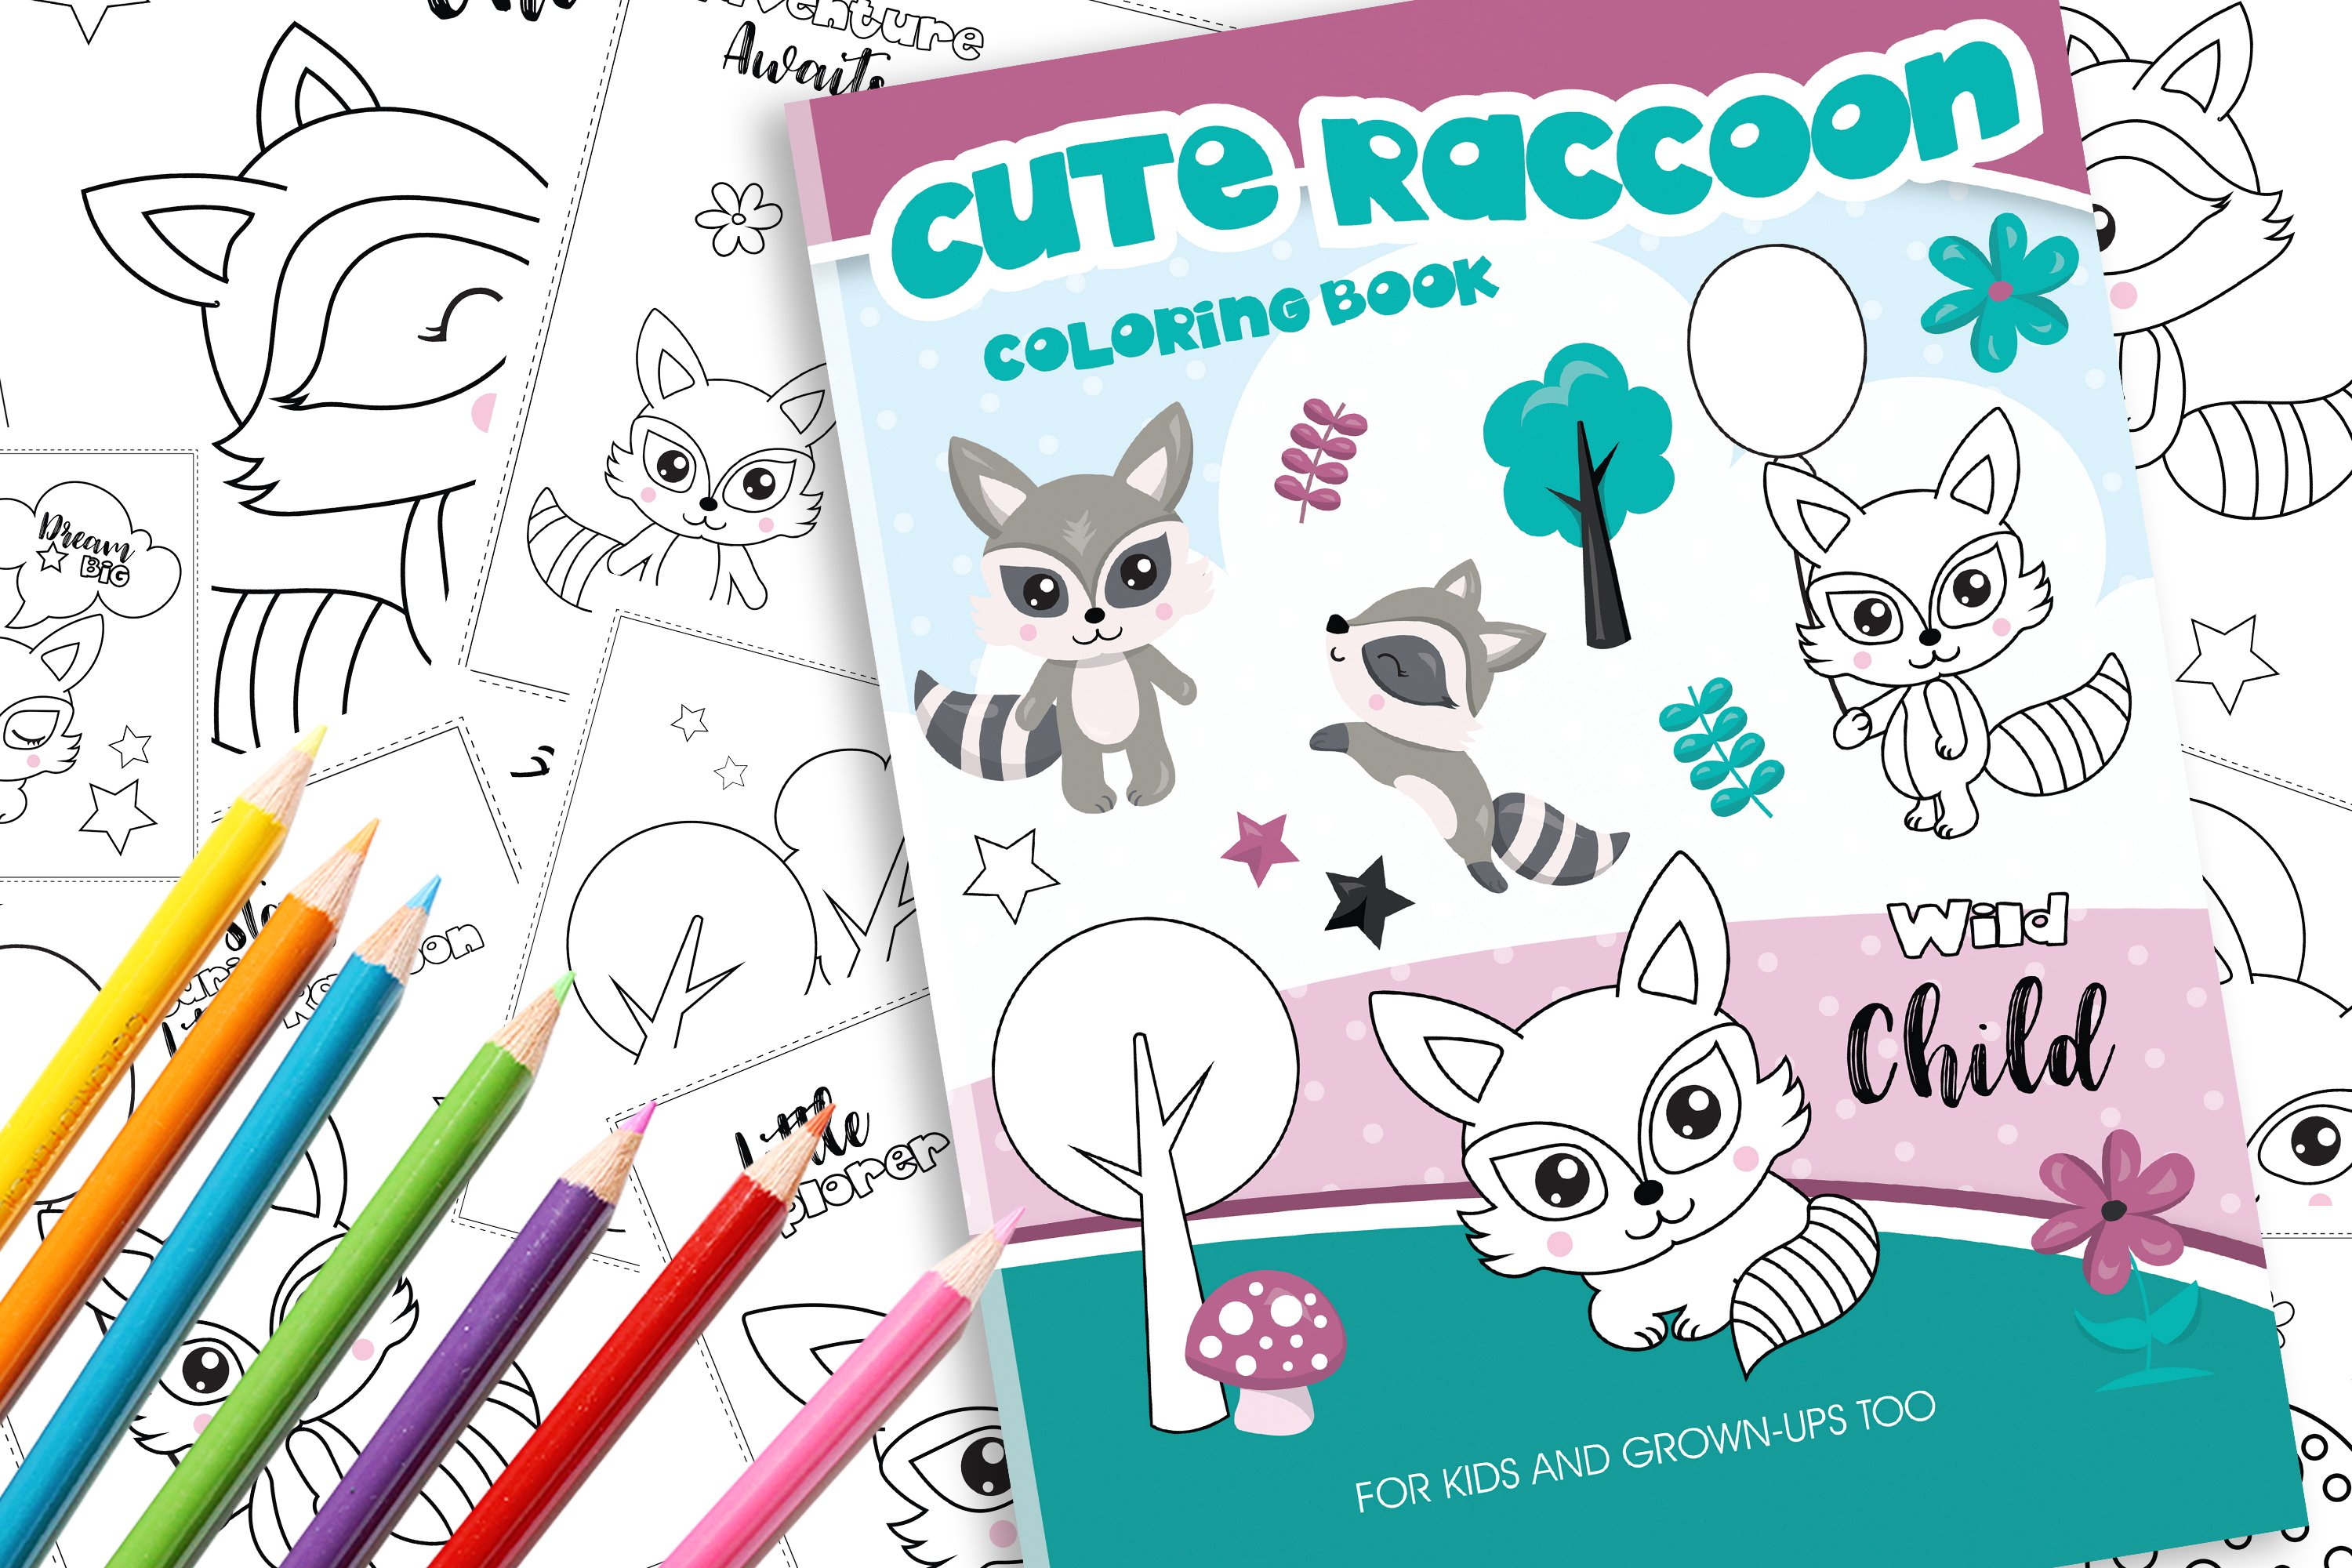 Cute Raccoons Coloring Book example image 1